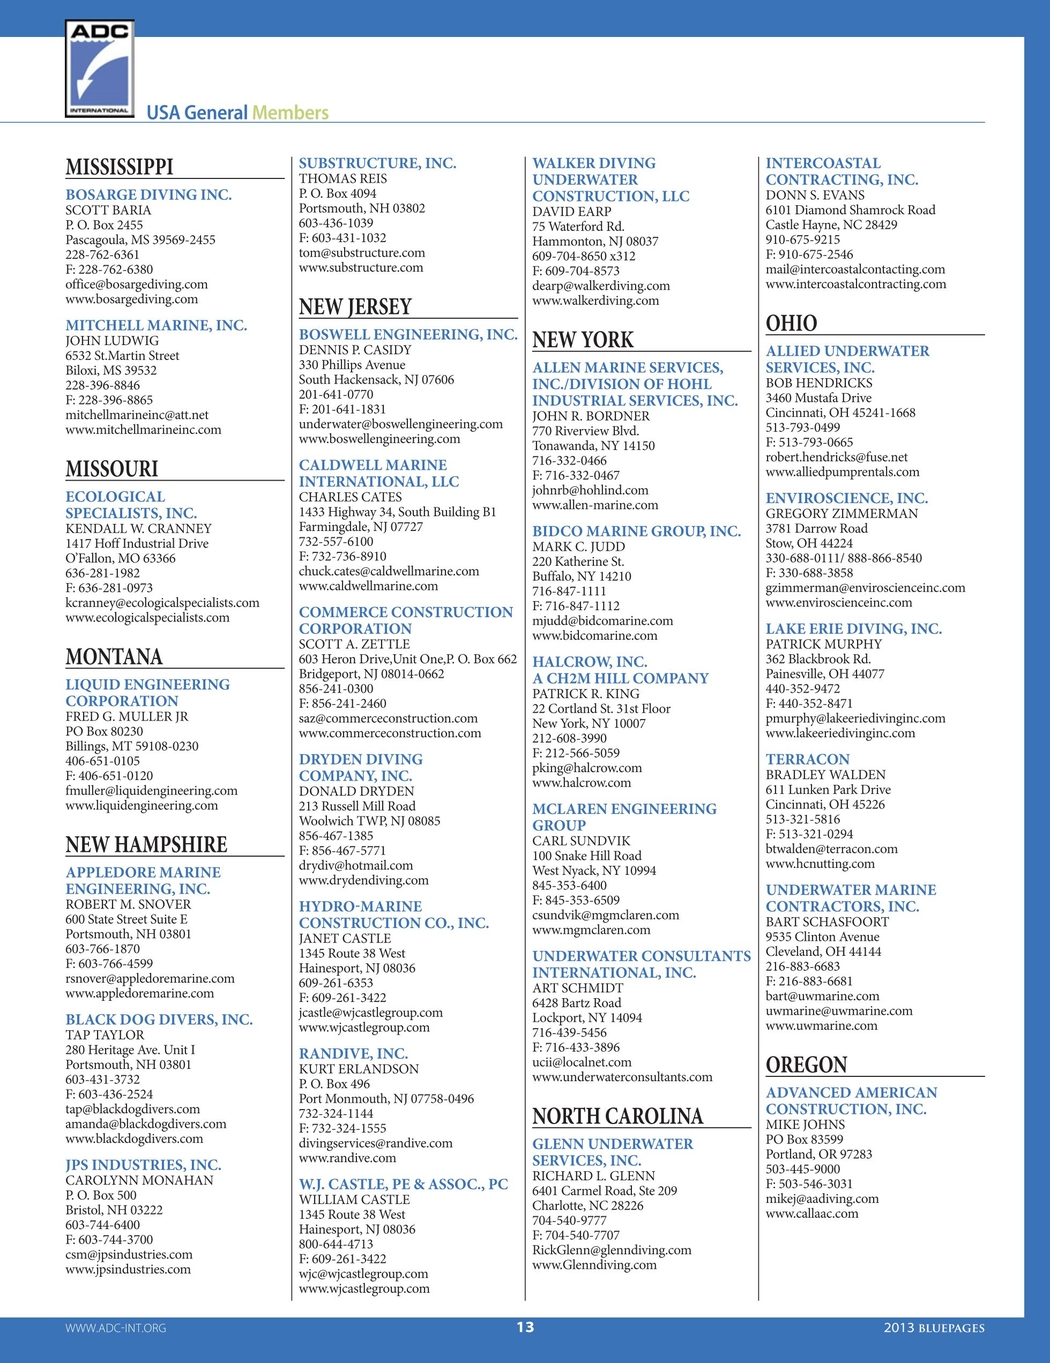 Blue Pages 2013 Membership Directory